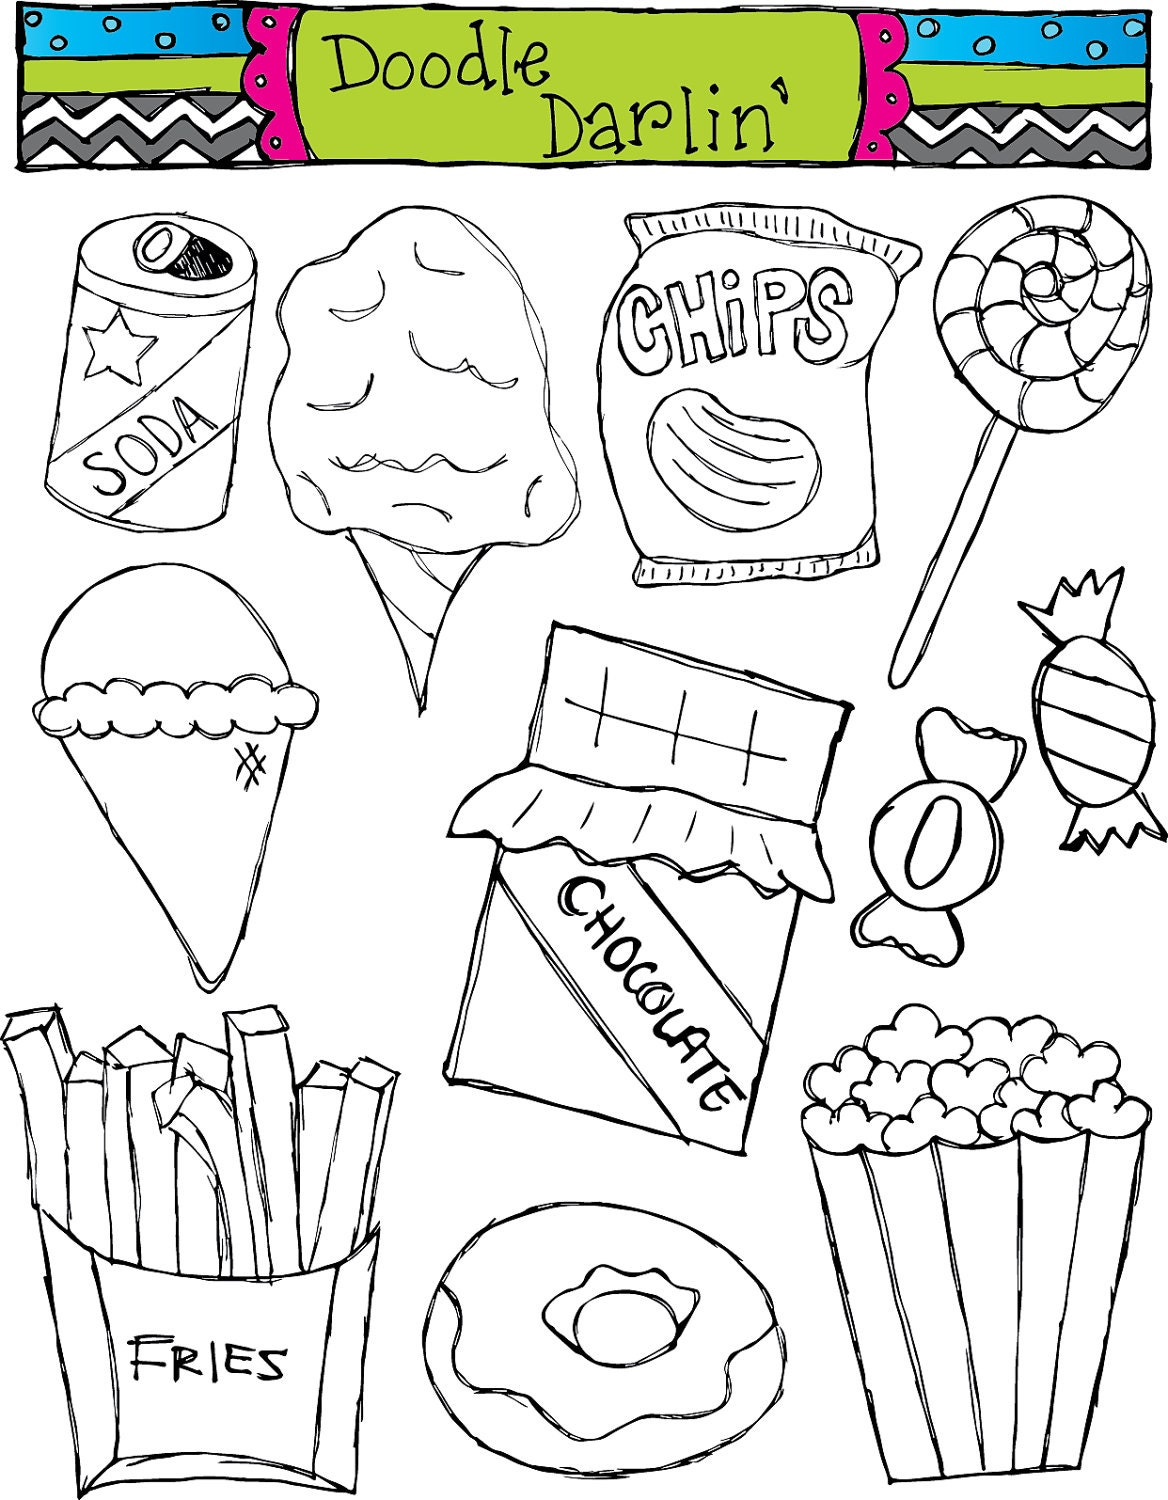 Junk Food Blackline Clipart Set INSTANT DOWNLOAD by DoodleDarlin